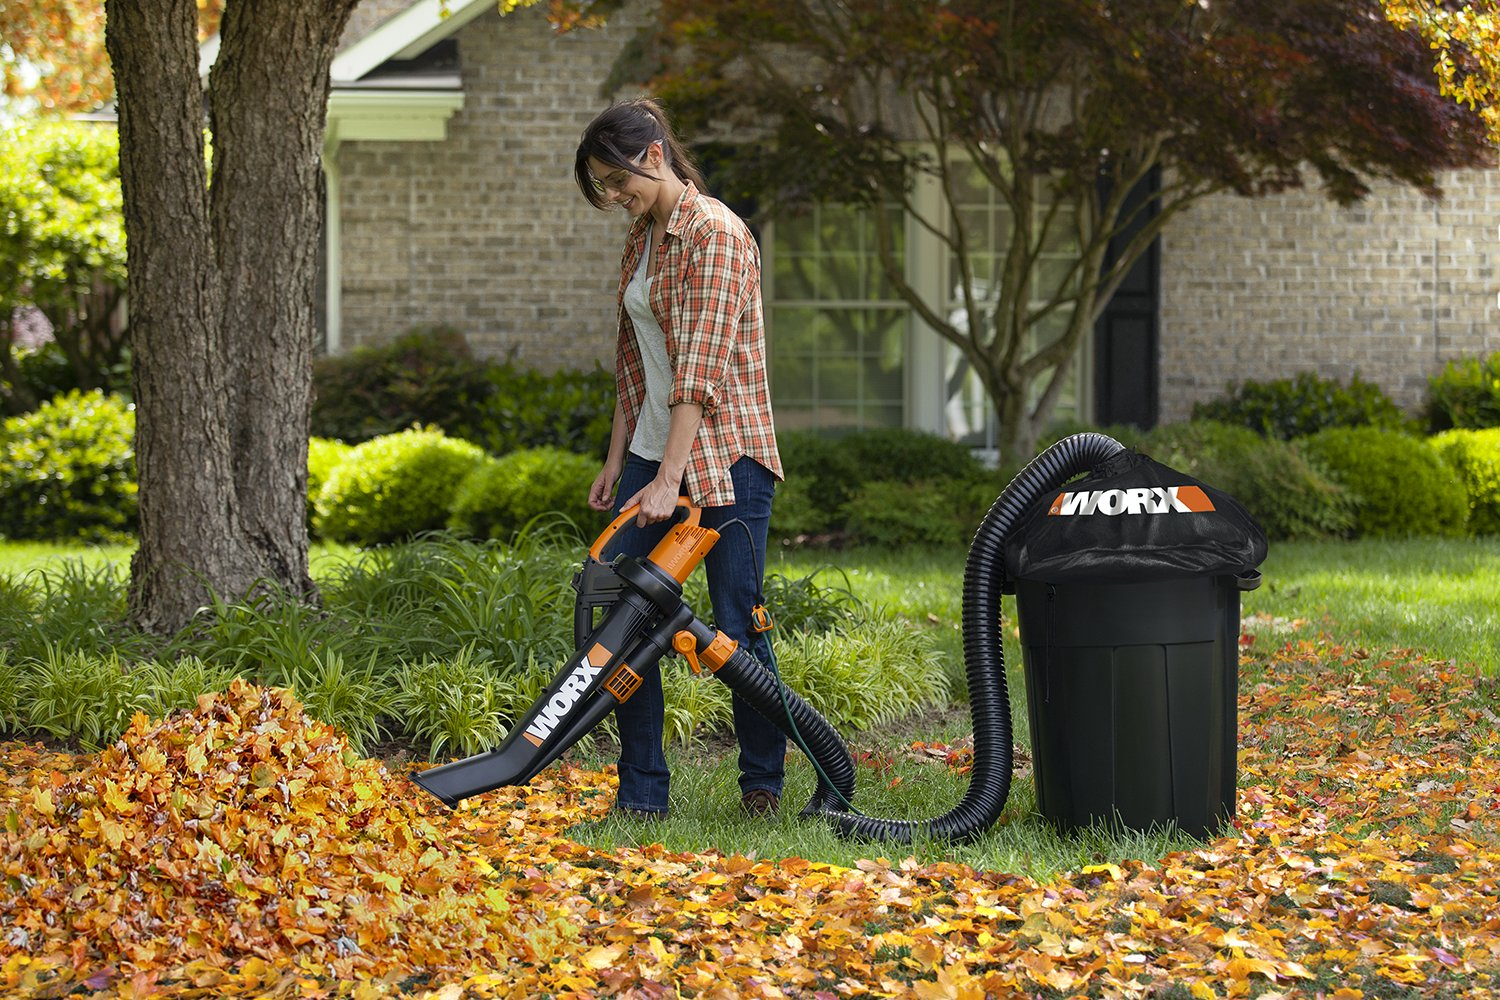 Worx WA4054.2 LeafPro Universal Leaf Collection System with Multi-Fit Adapter and 8' Hose